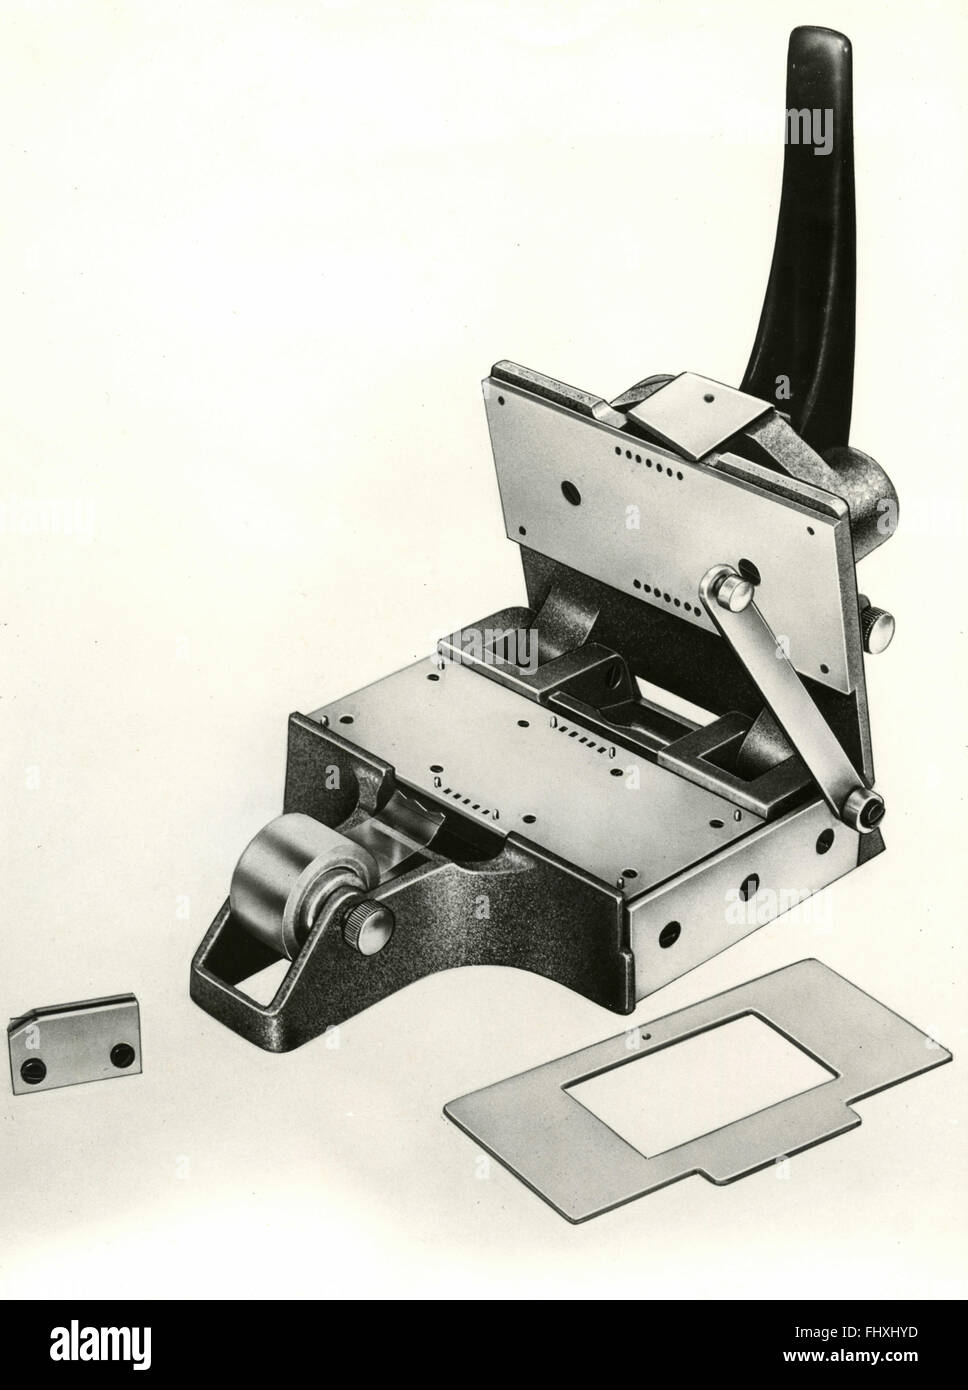 Analog negative photographic equipment for movies, Italy - Stock Image